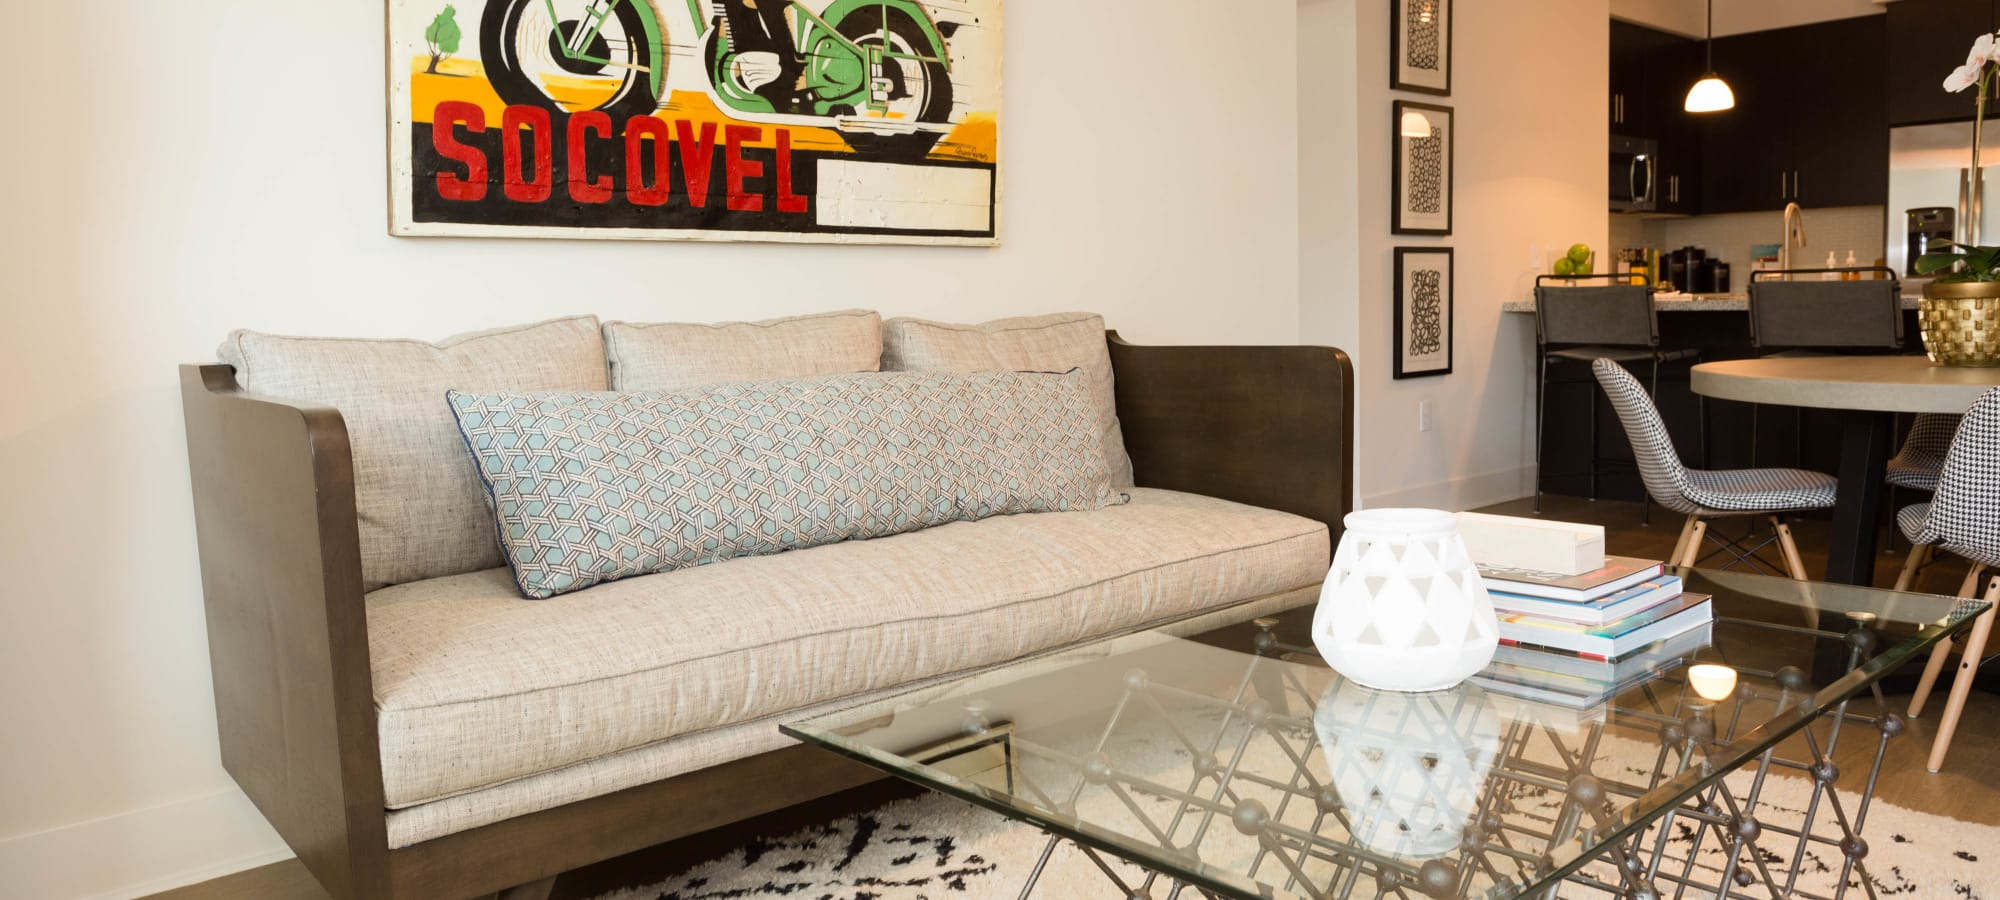 Well-decorated living area in model home at Avant at Fashion Center in Chandler, Arizona